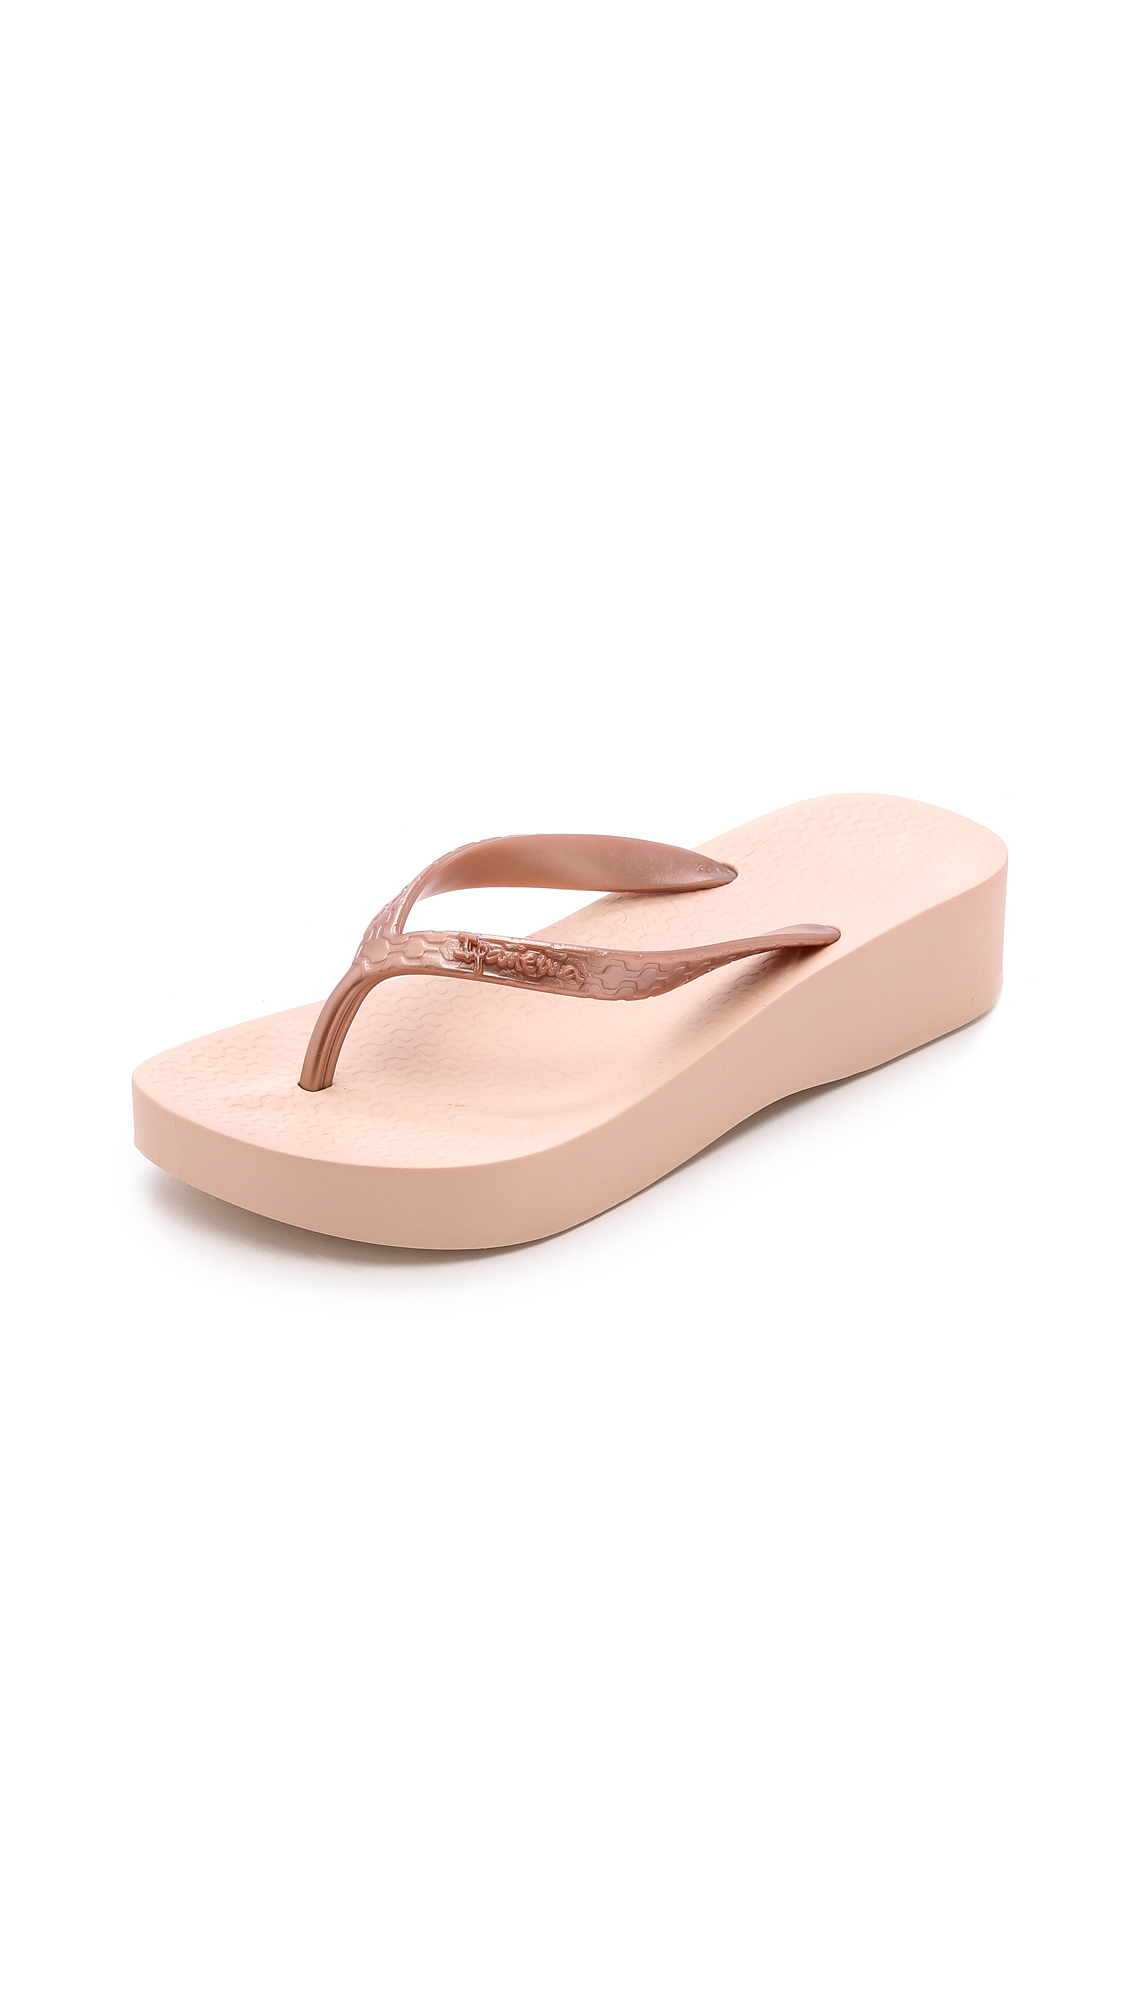 3e1fd80aac7997 Lyst - Ipanema Tropical Wedge Flip Flops - Rose Gold in Pink